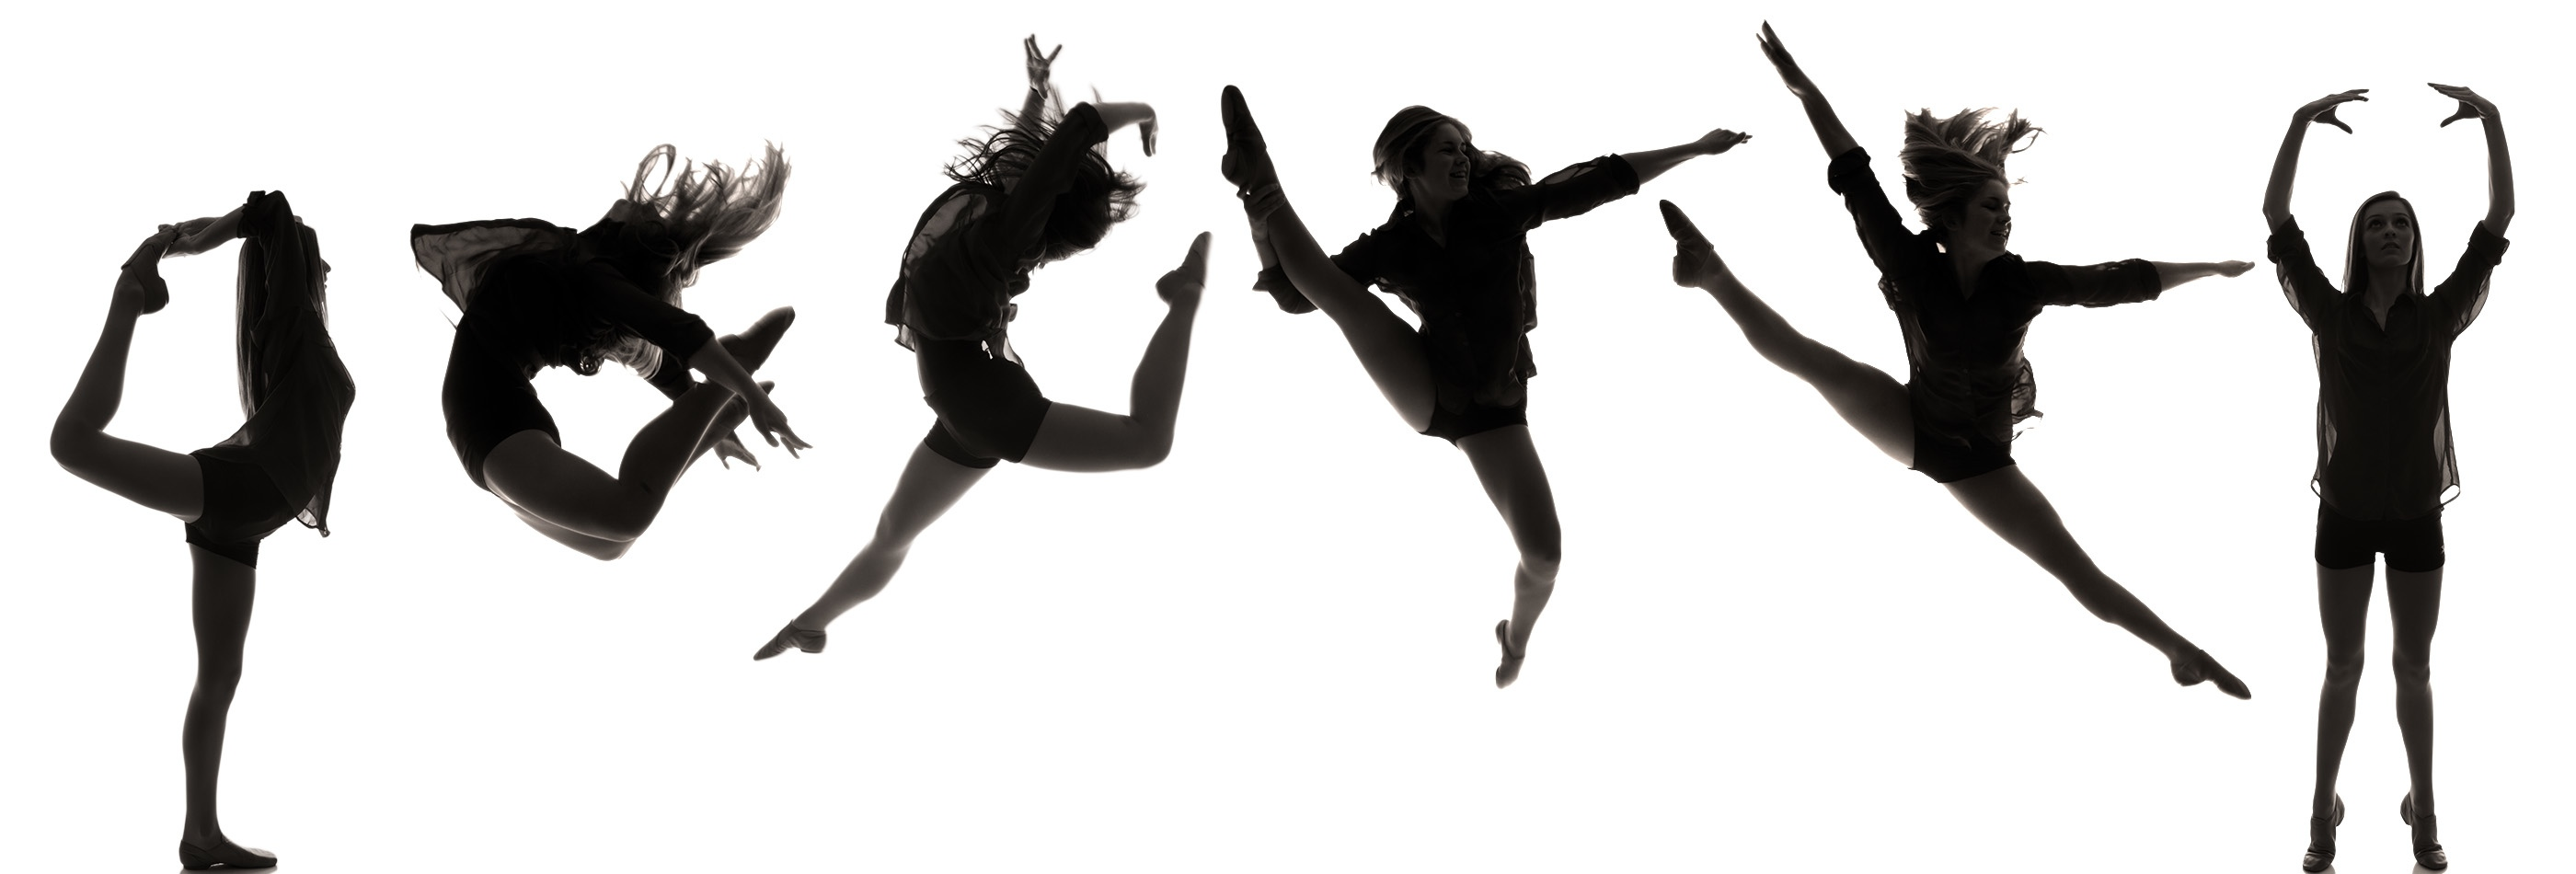 2800x950 Dancing Silhouette Group